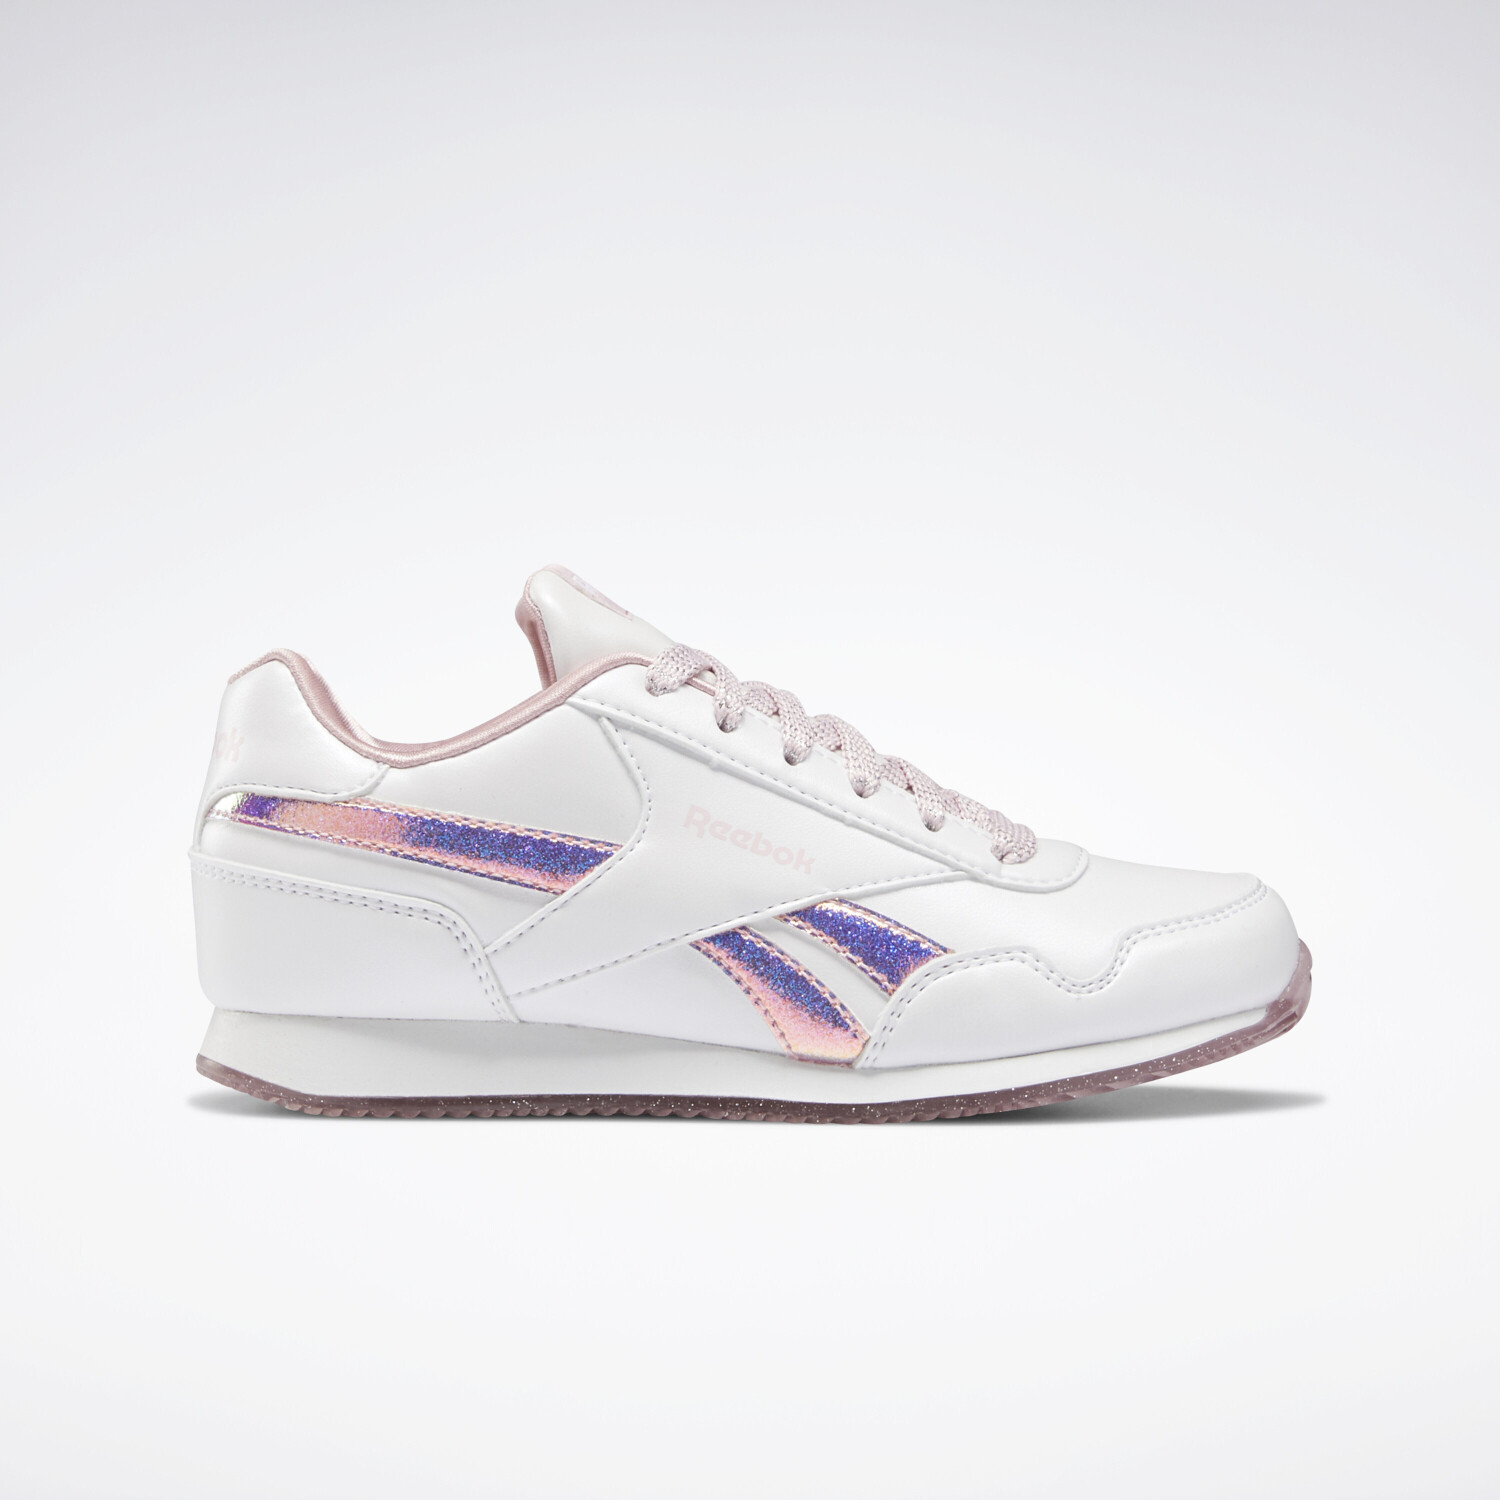 Reebok Royal Classic Jogger 3 White/White/Classic Pink (FY4814)